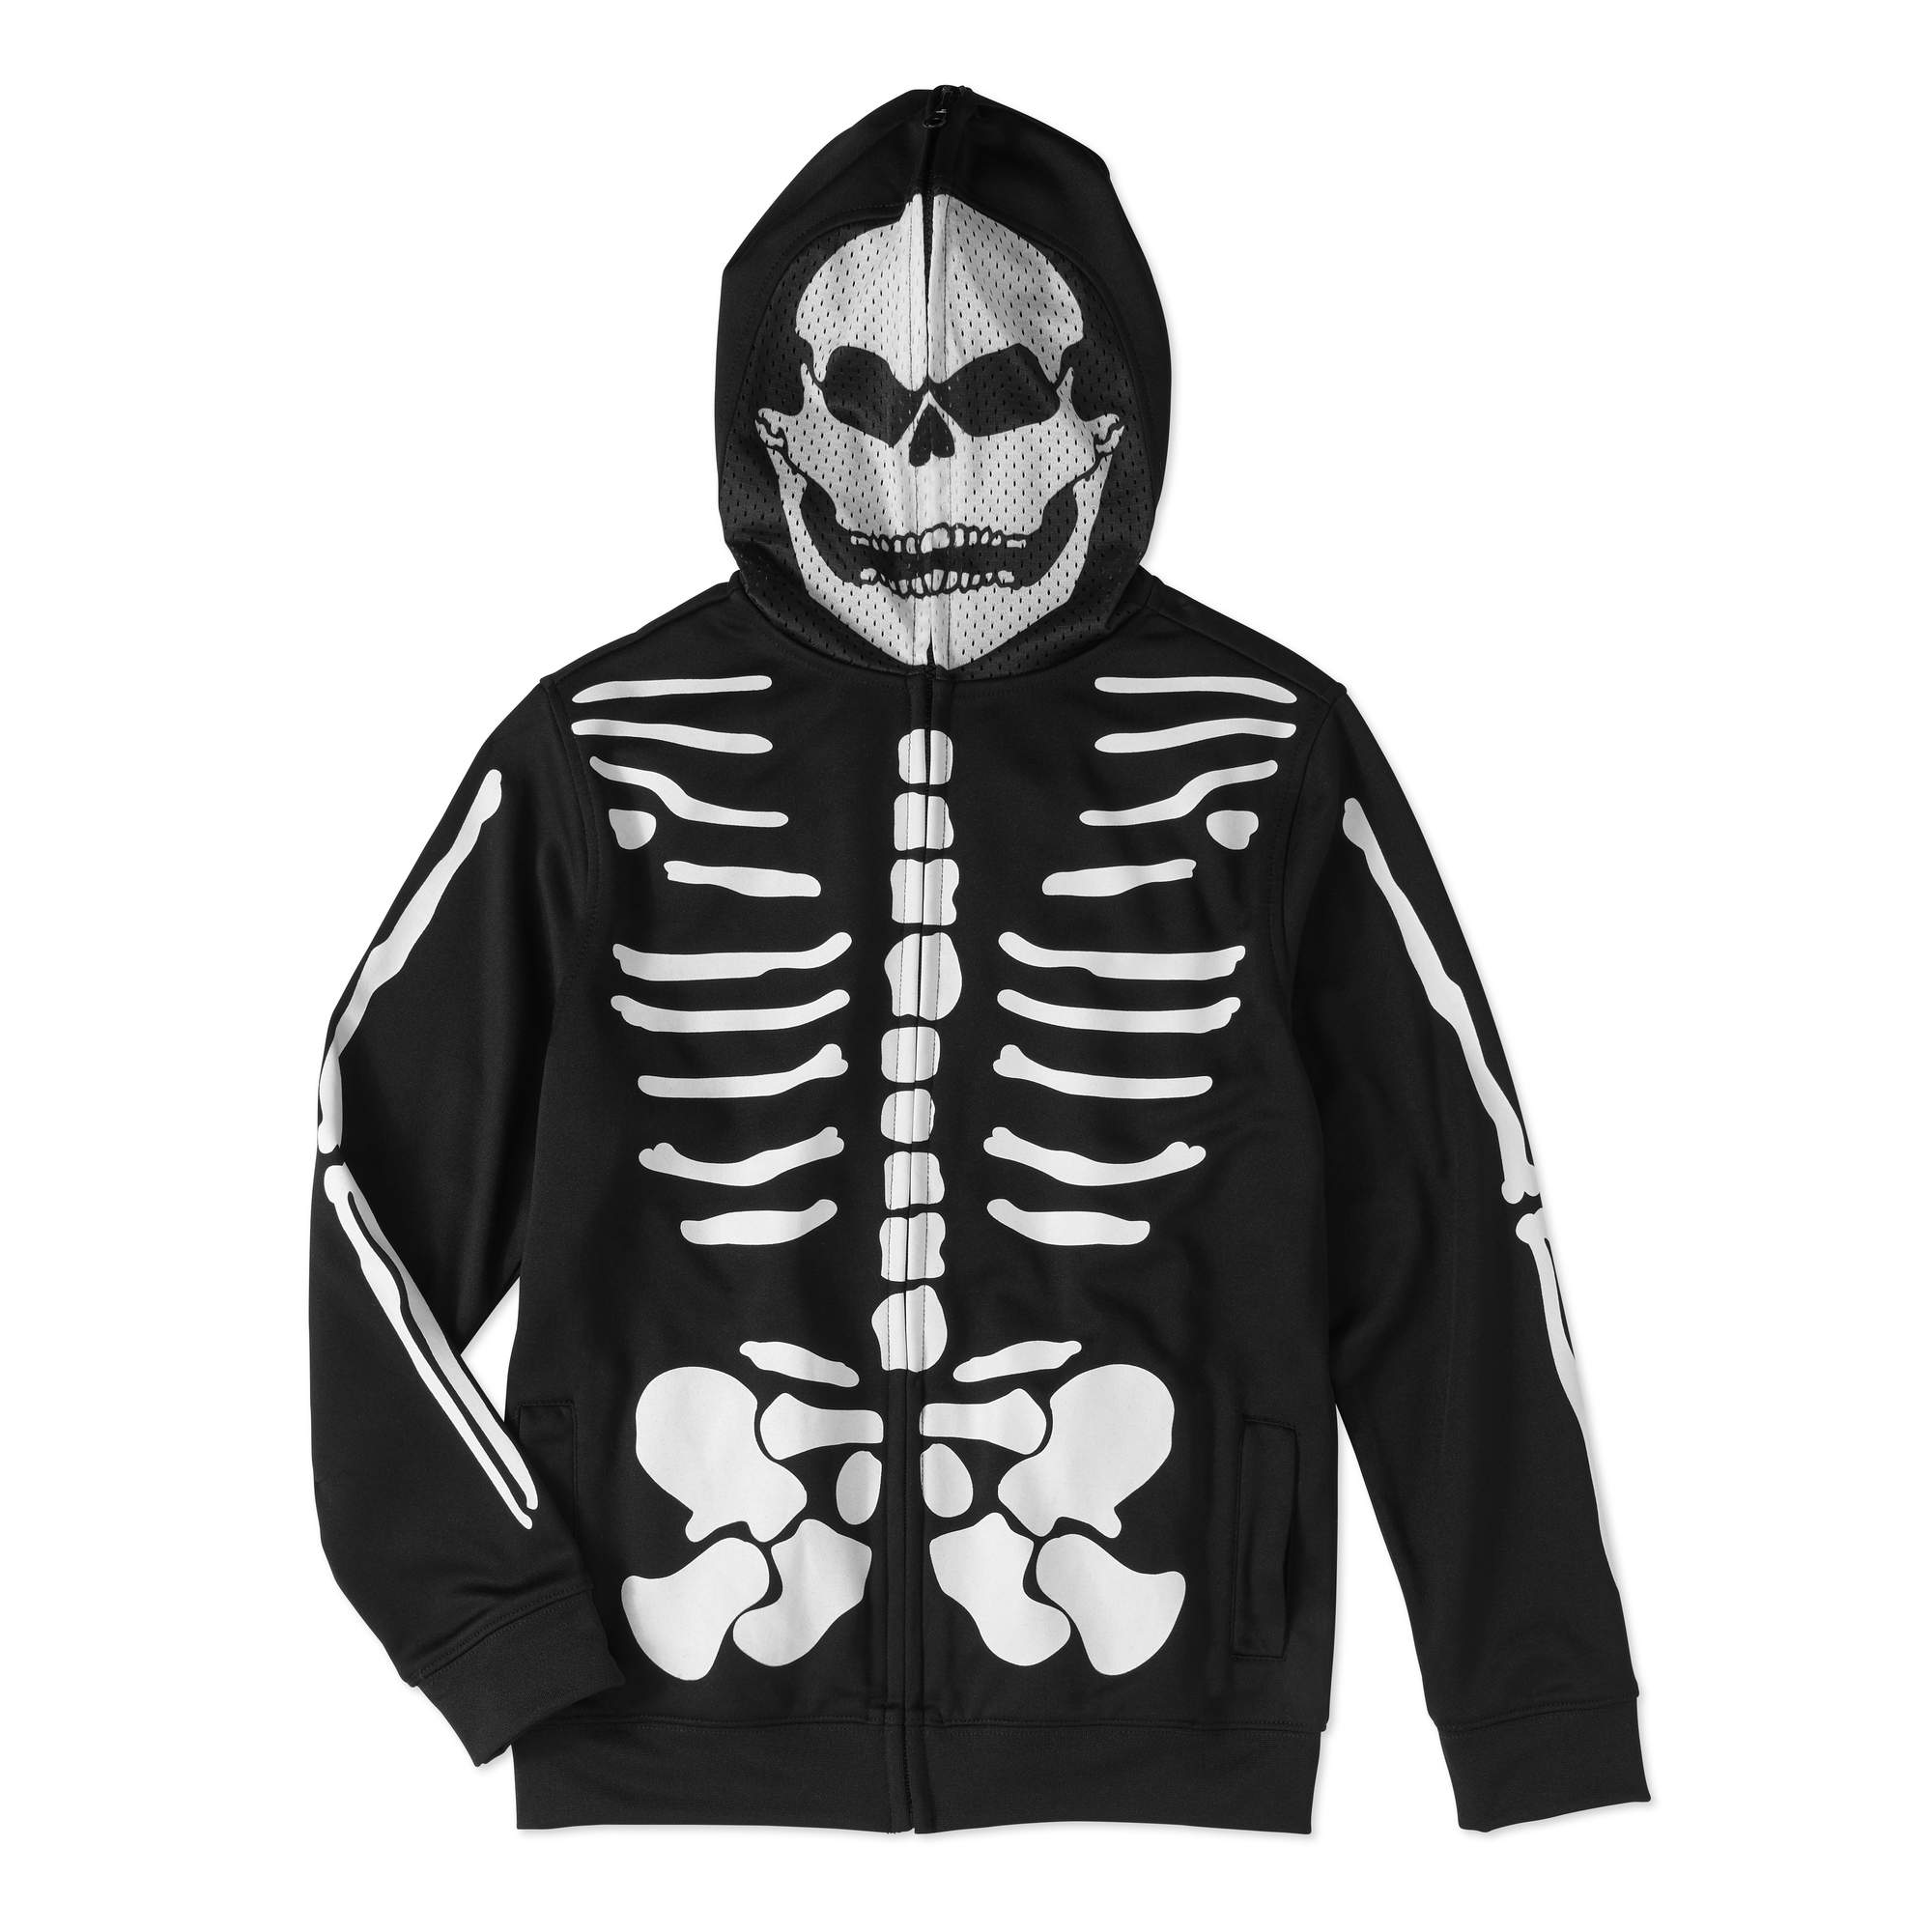 Boys' Long Sleeve Skeleton Zip Up Costume Hoodie